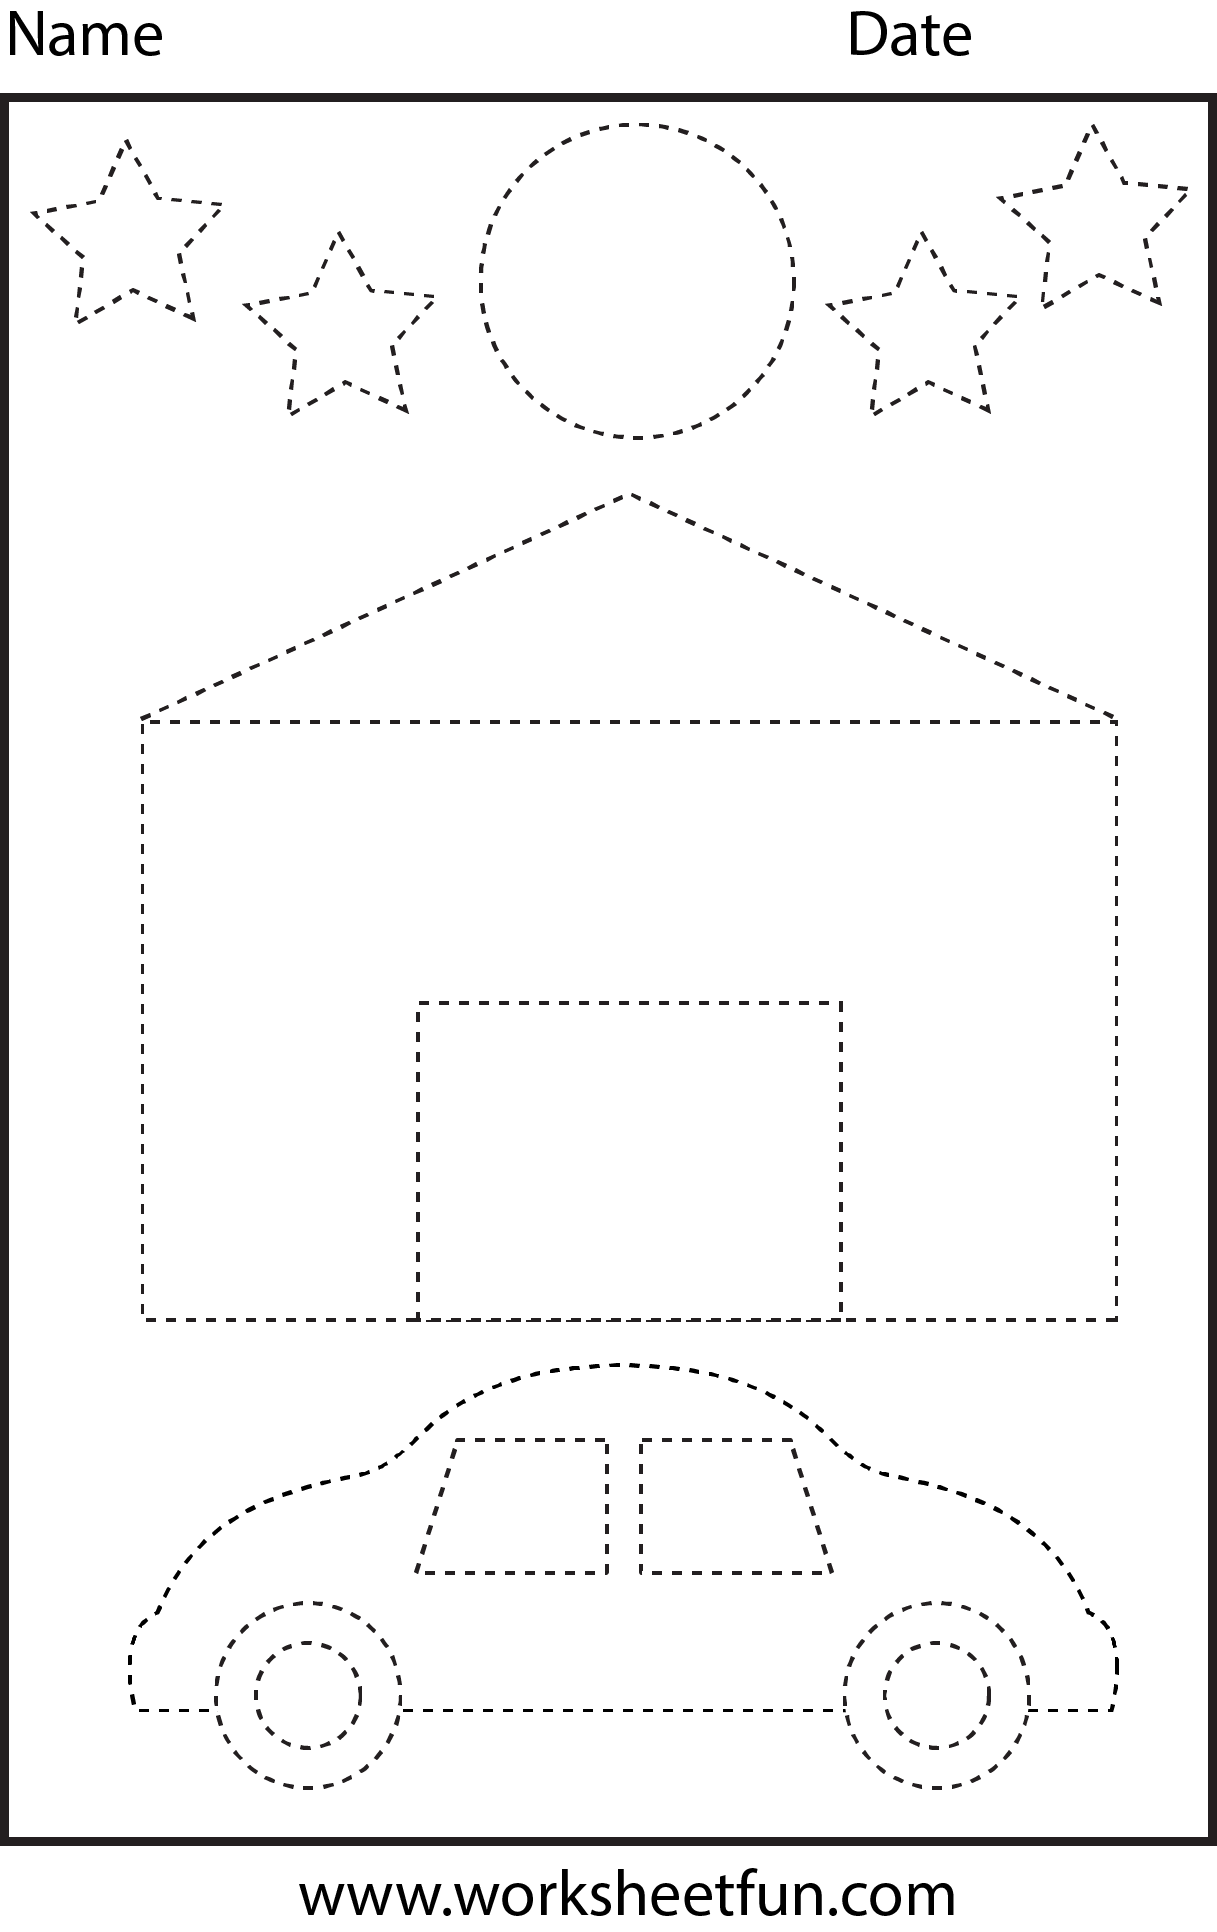 House, car, moon & stars tracing worksheet | Tracing Worksheets ...